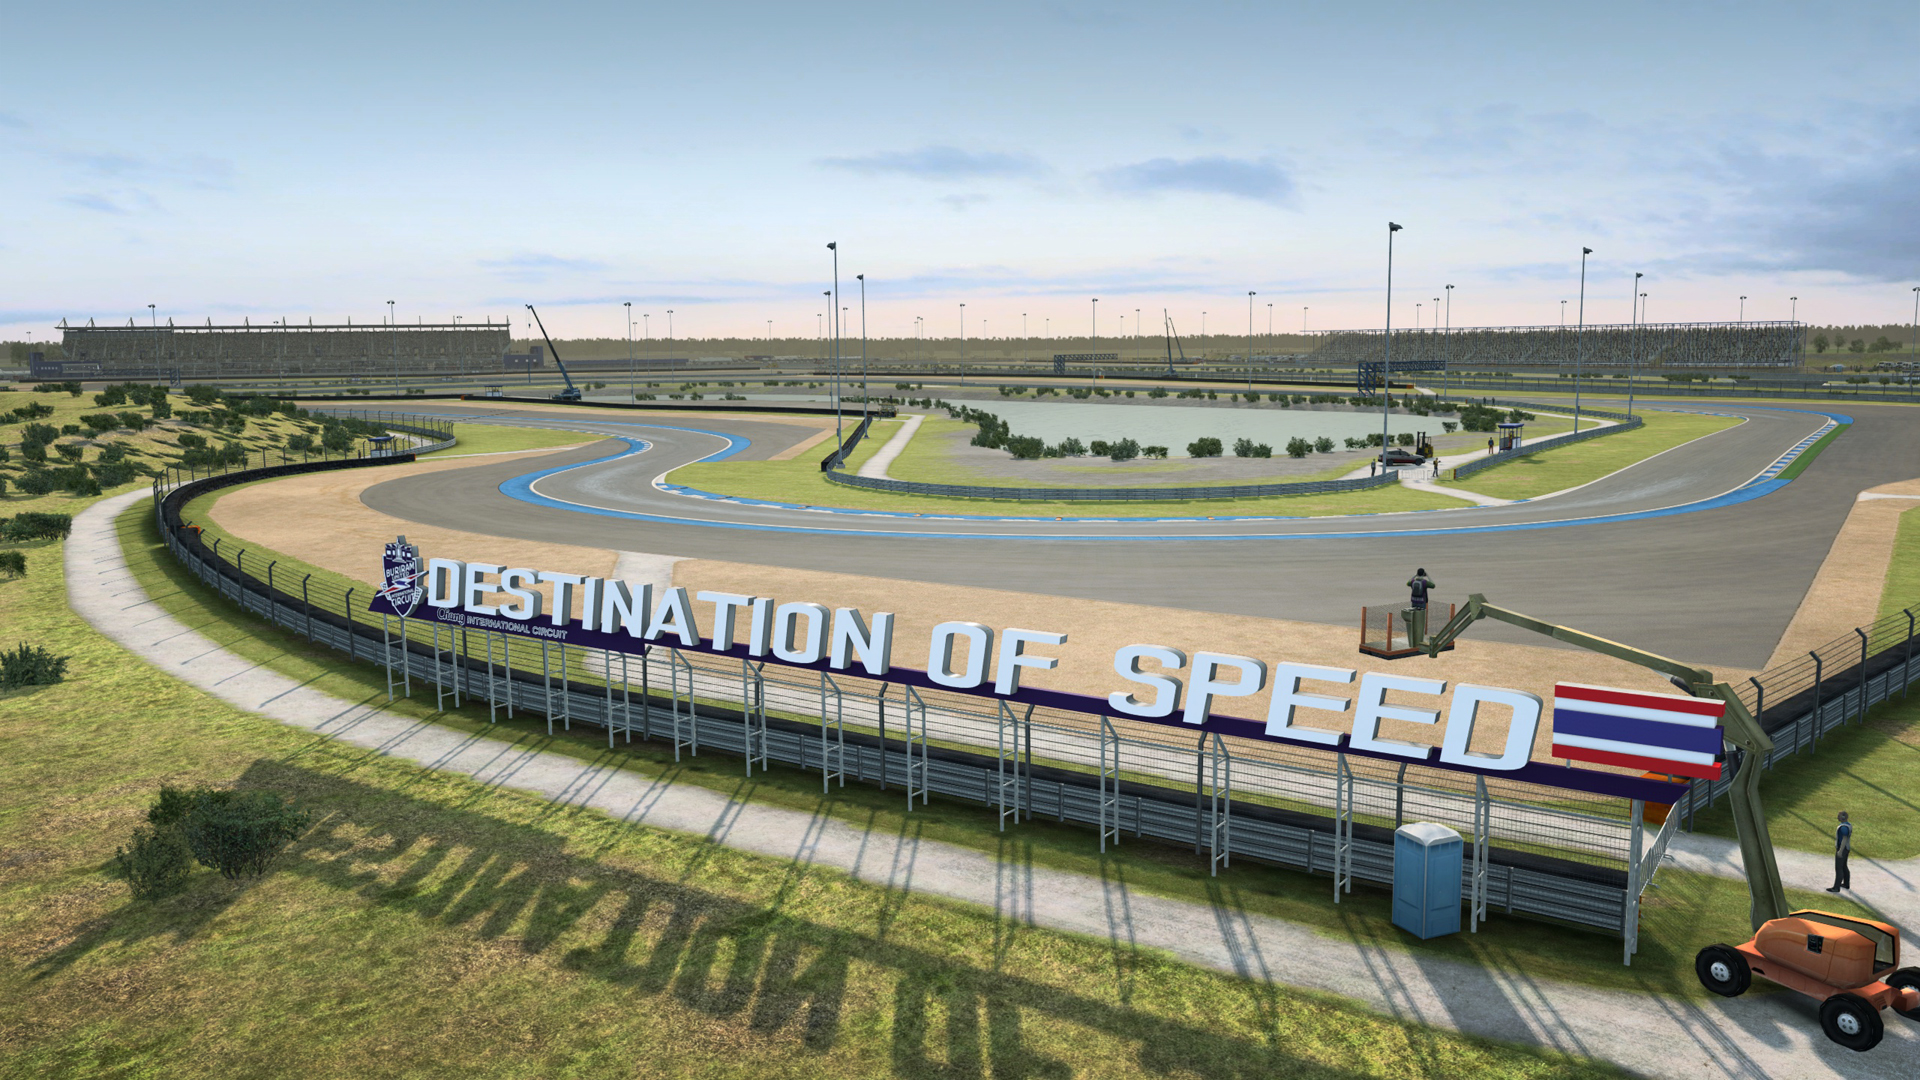 Chang International Circuit. Image: Bikesrepublic